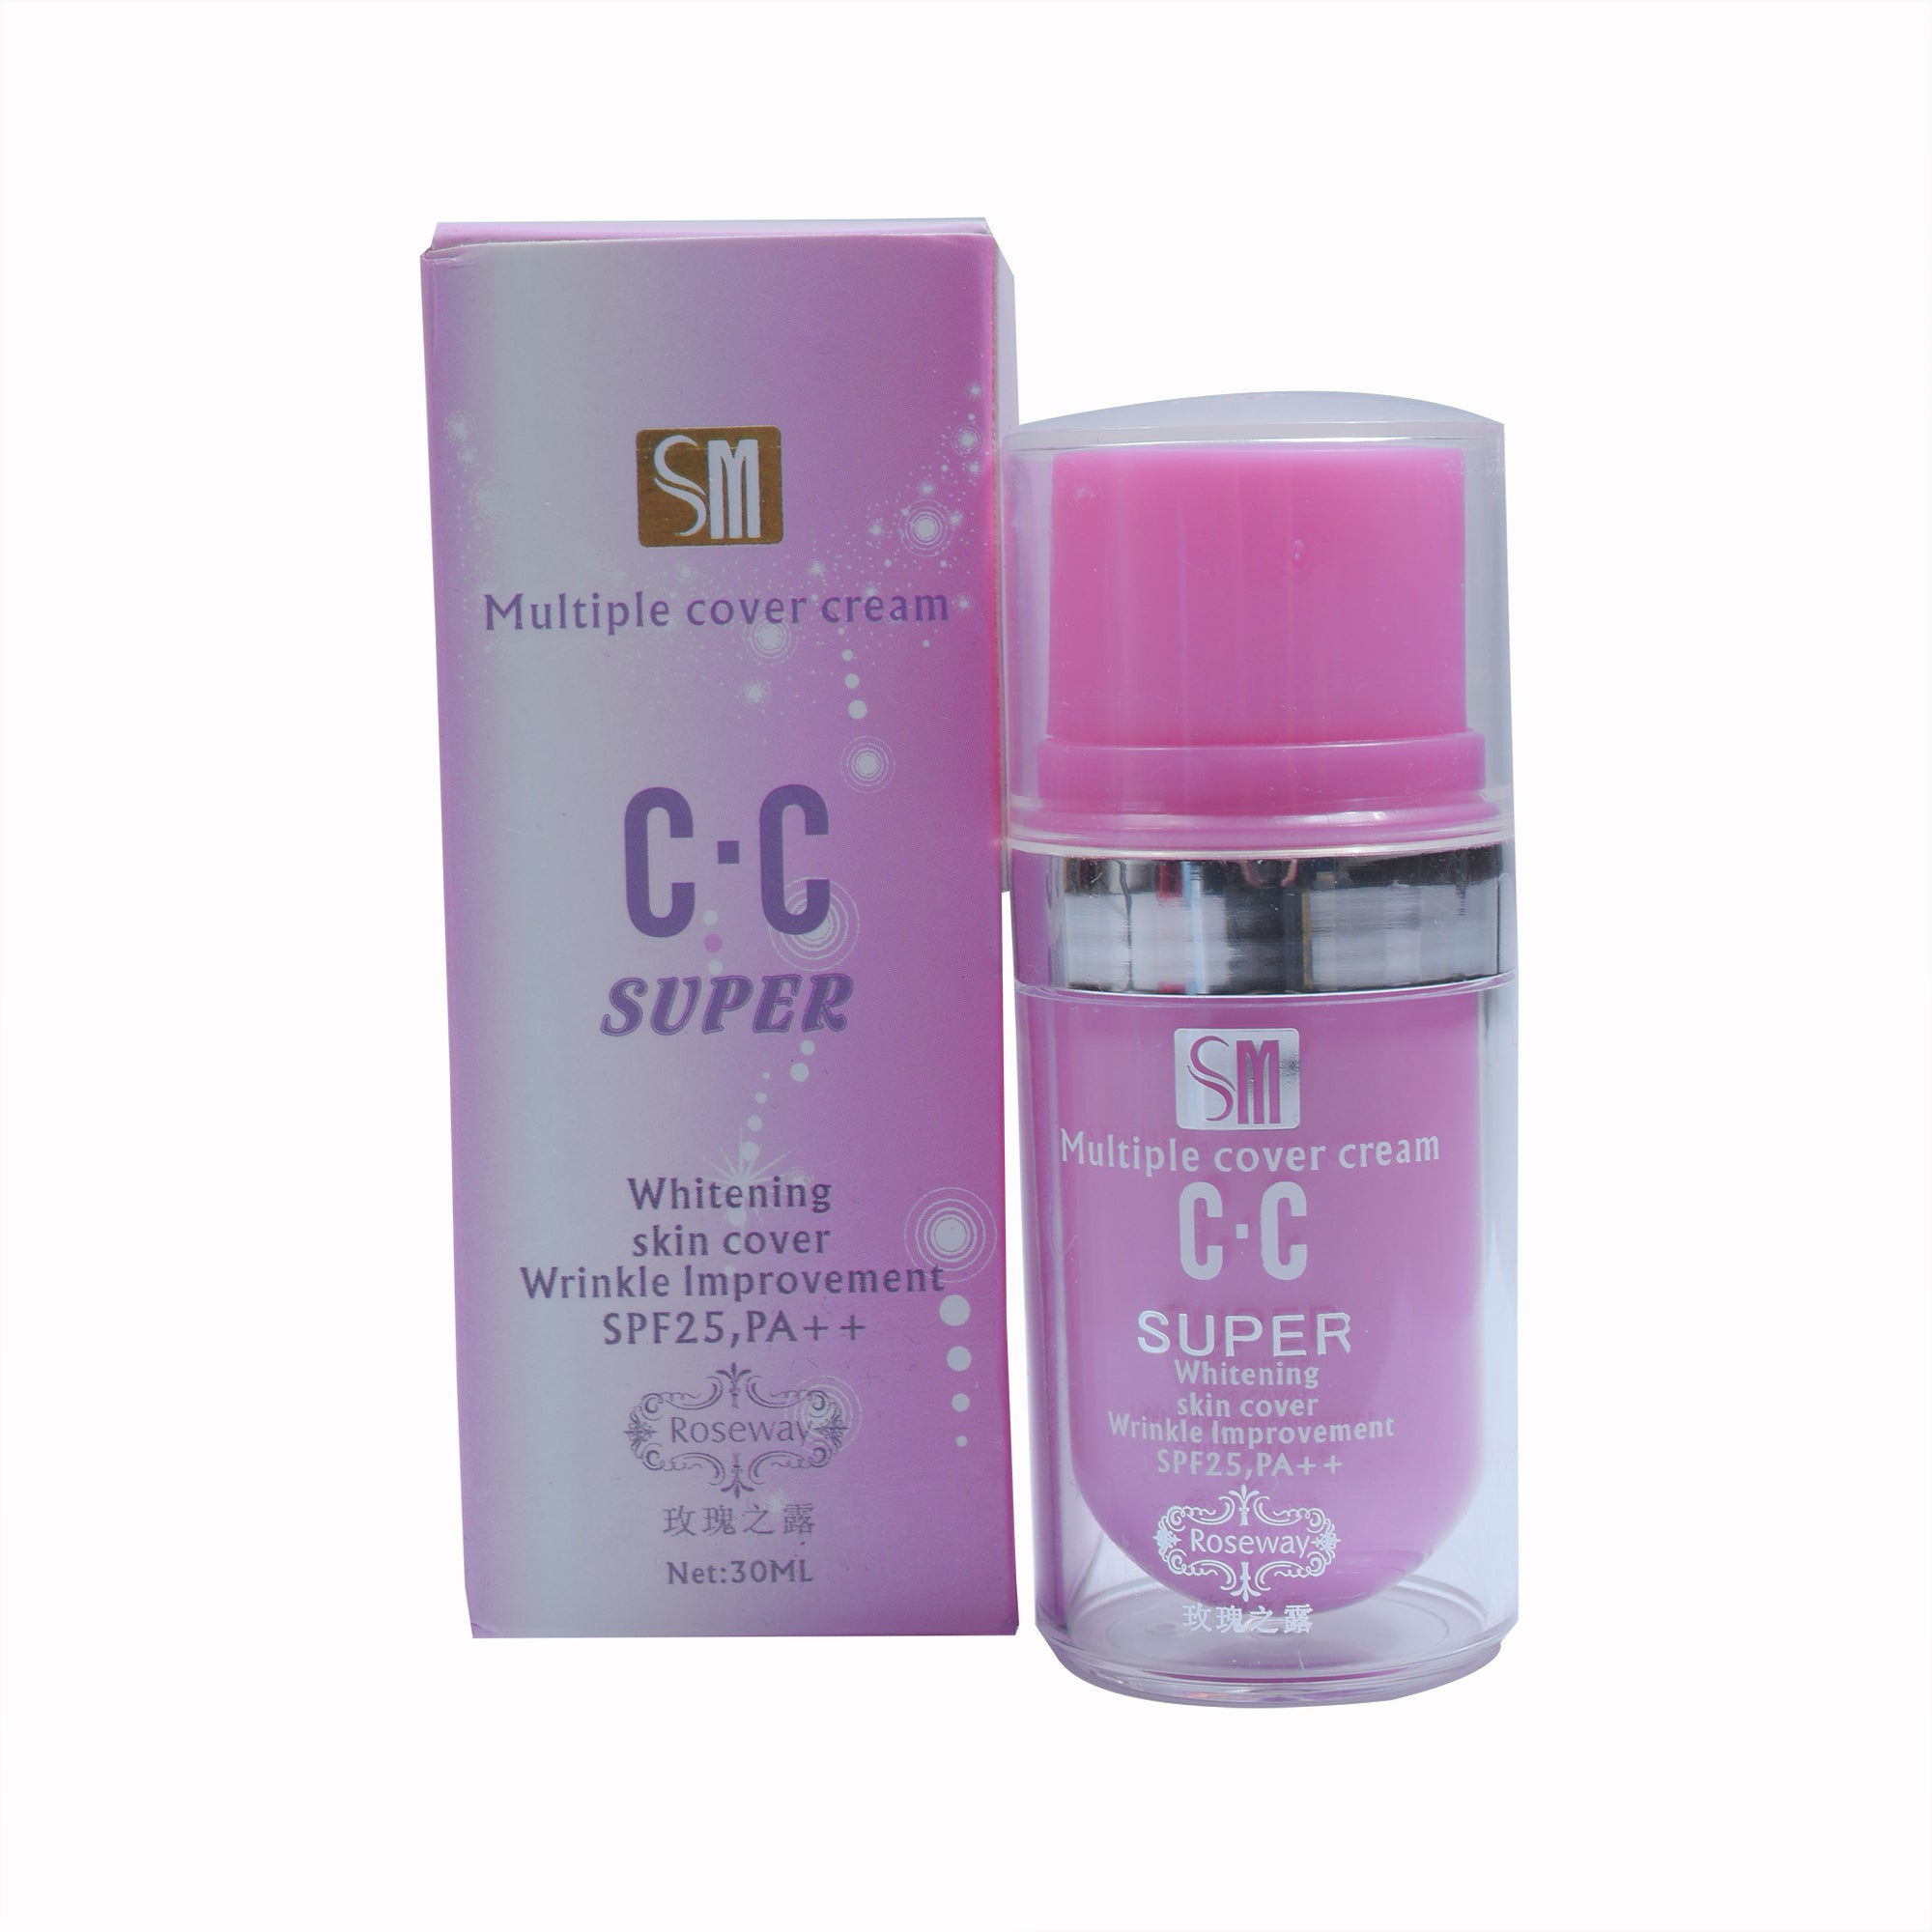 SM multiple cover cream C.C whitening skin cover wrinkle improvement-SK0145